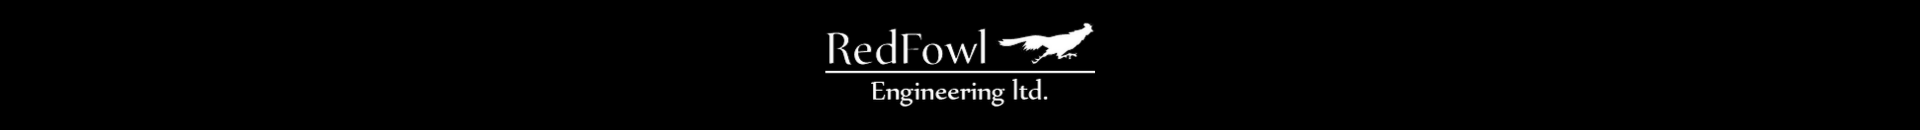 RedFowl Engineering ltd.